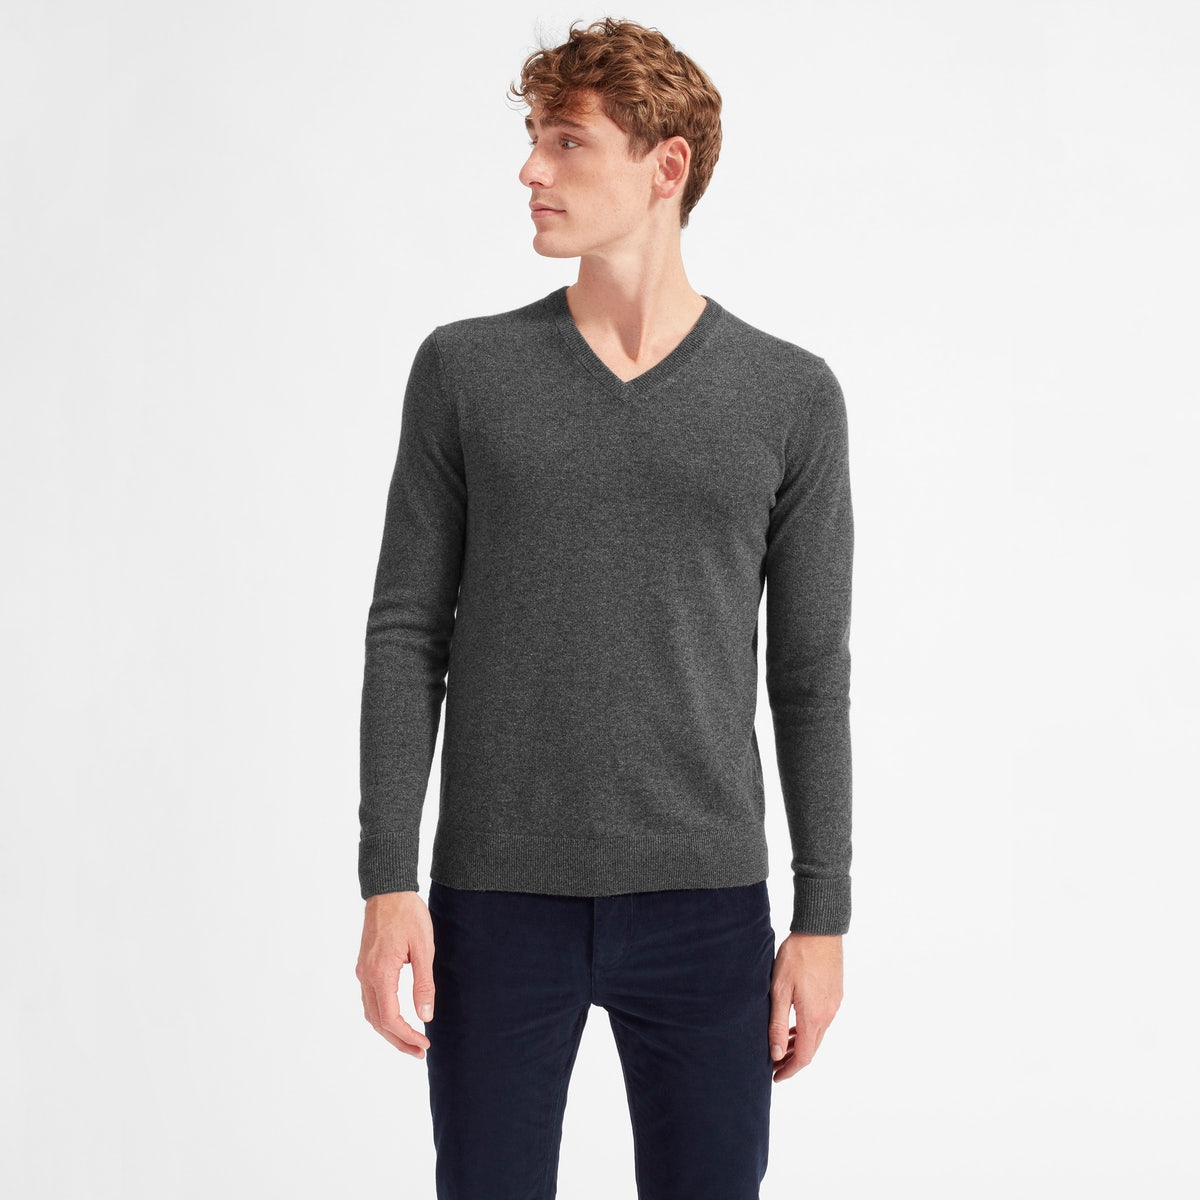 Everlane cashmere v-neck sweater, $100